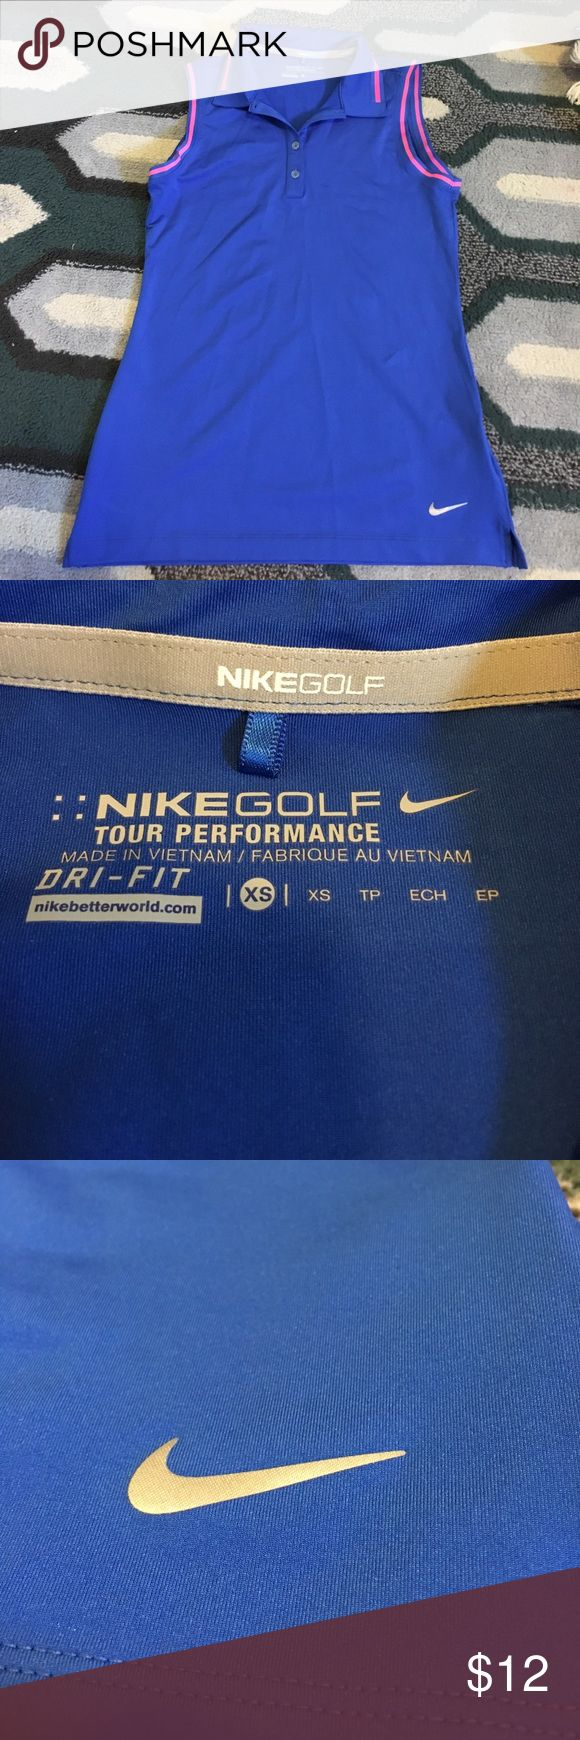 Nike Dri-Fit Women's Golf Shirt Never worn. In excellent condition! Nike Tops